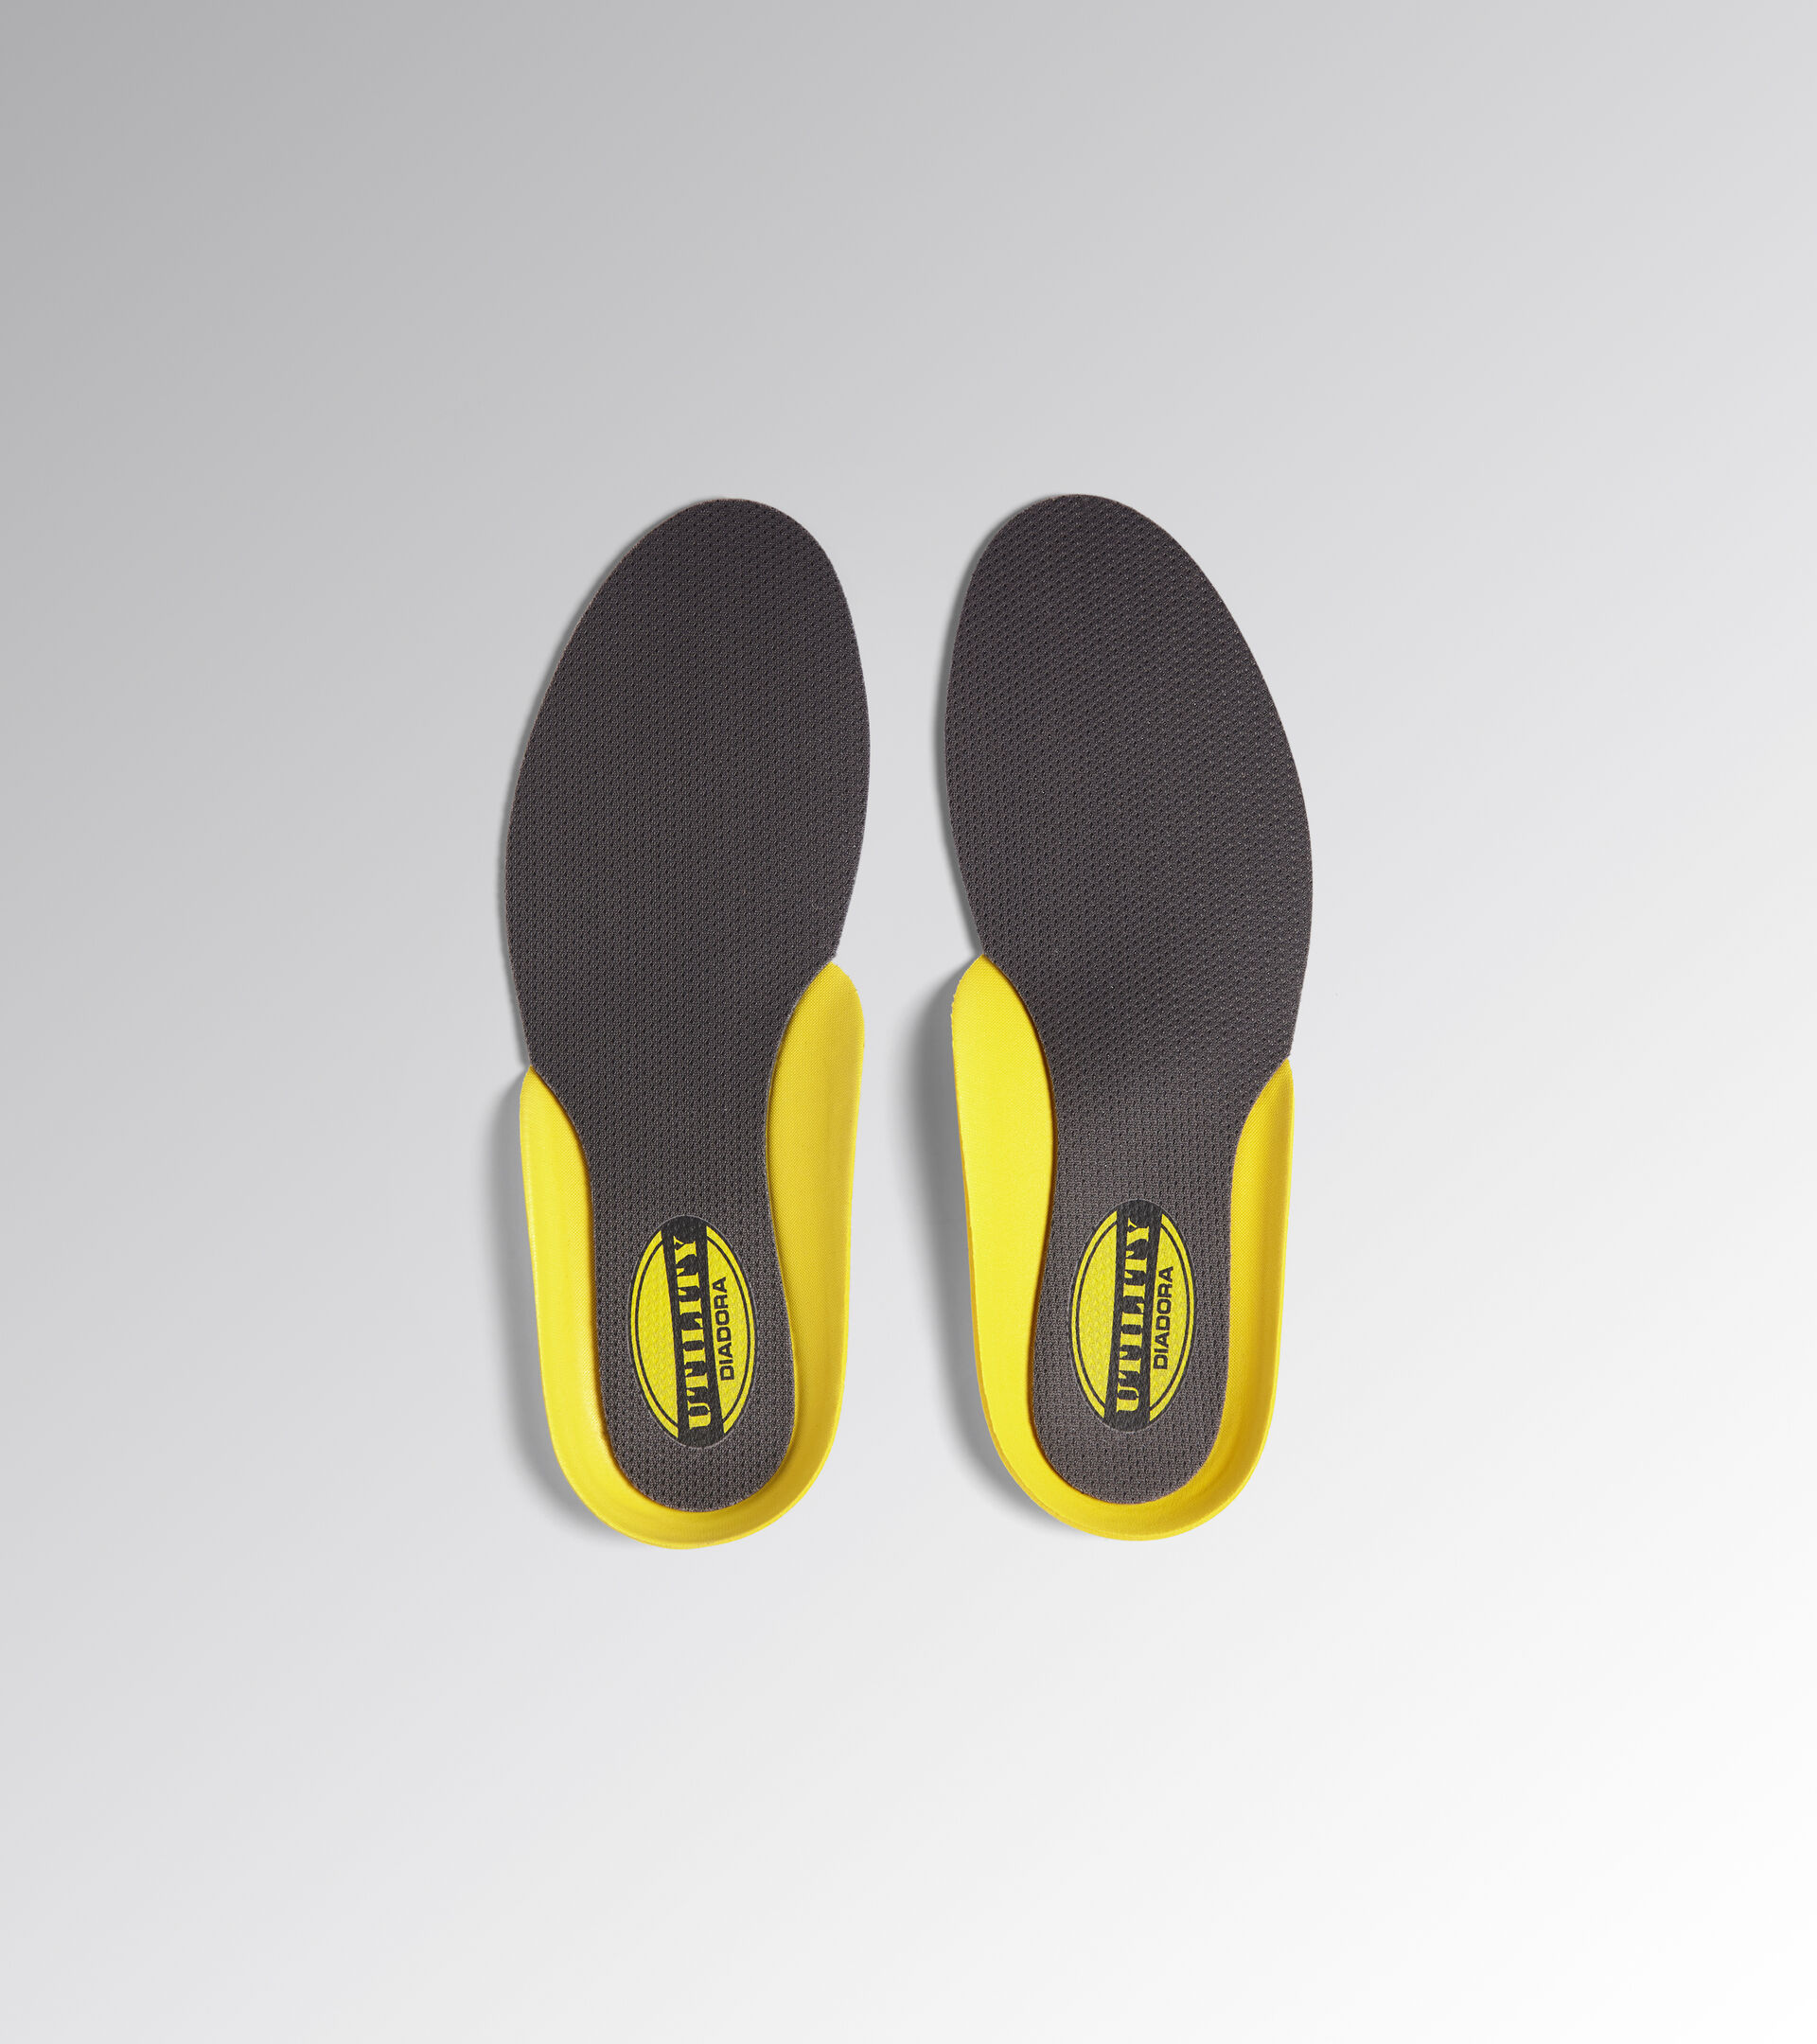 Accessories Utility UNISEX INSOLE EVERY LEATHER/YELLOW. Utility